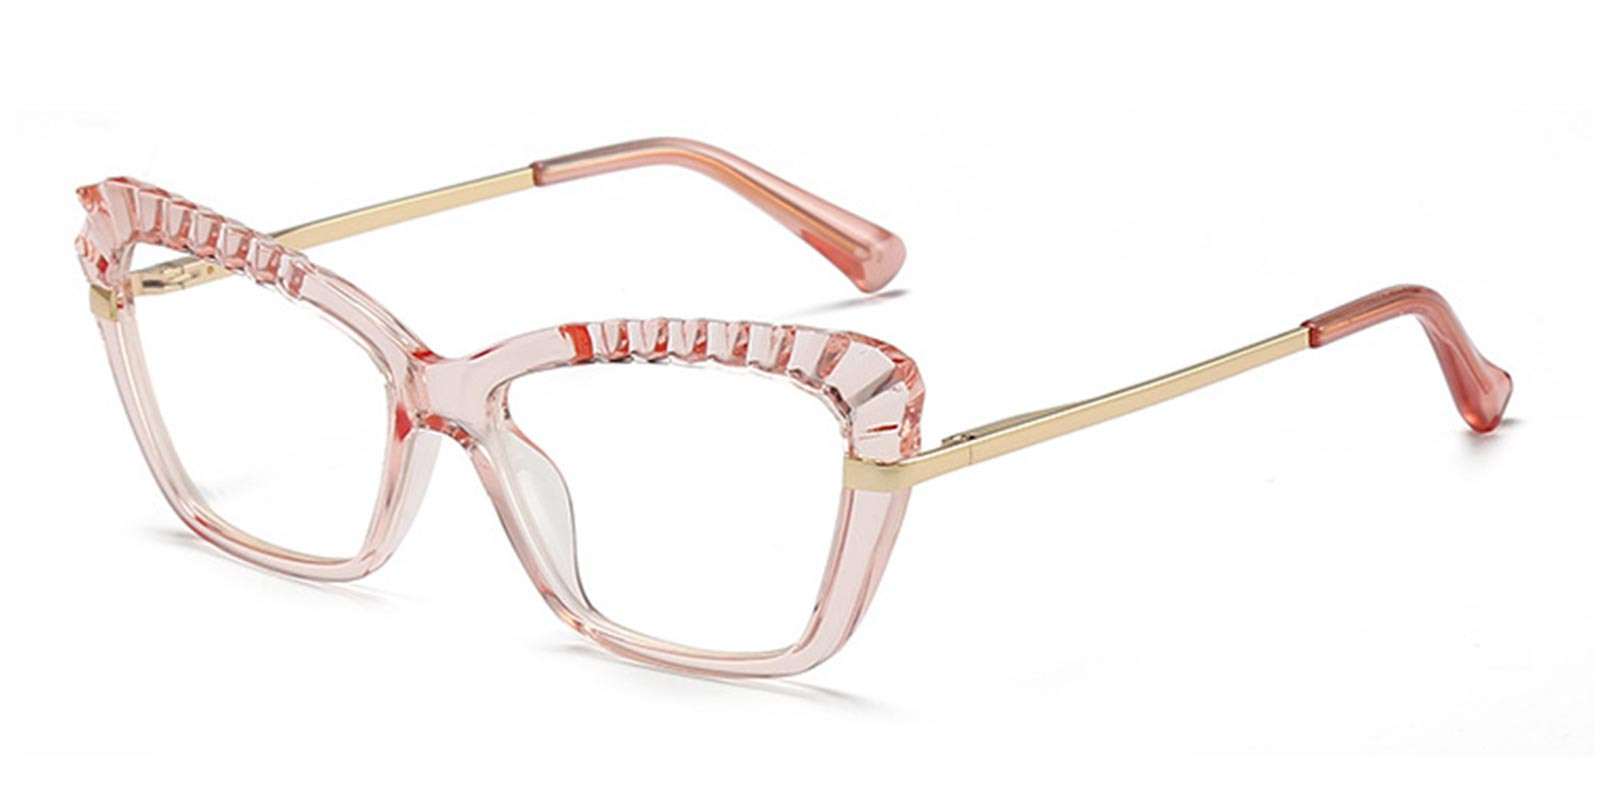 Giovanna-Cp and metal frame glasses with spring hinge